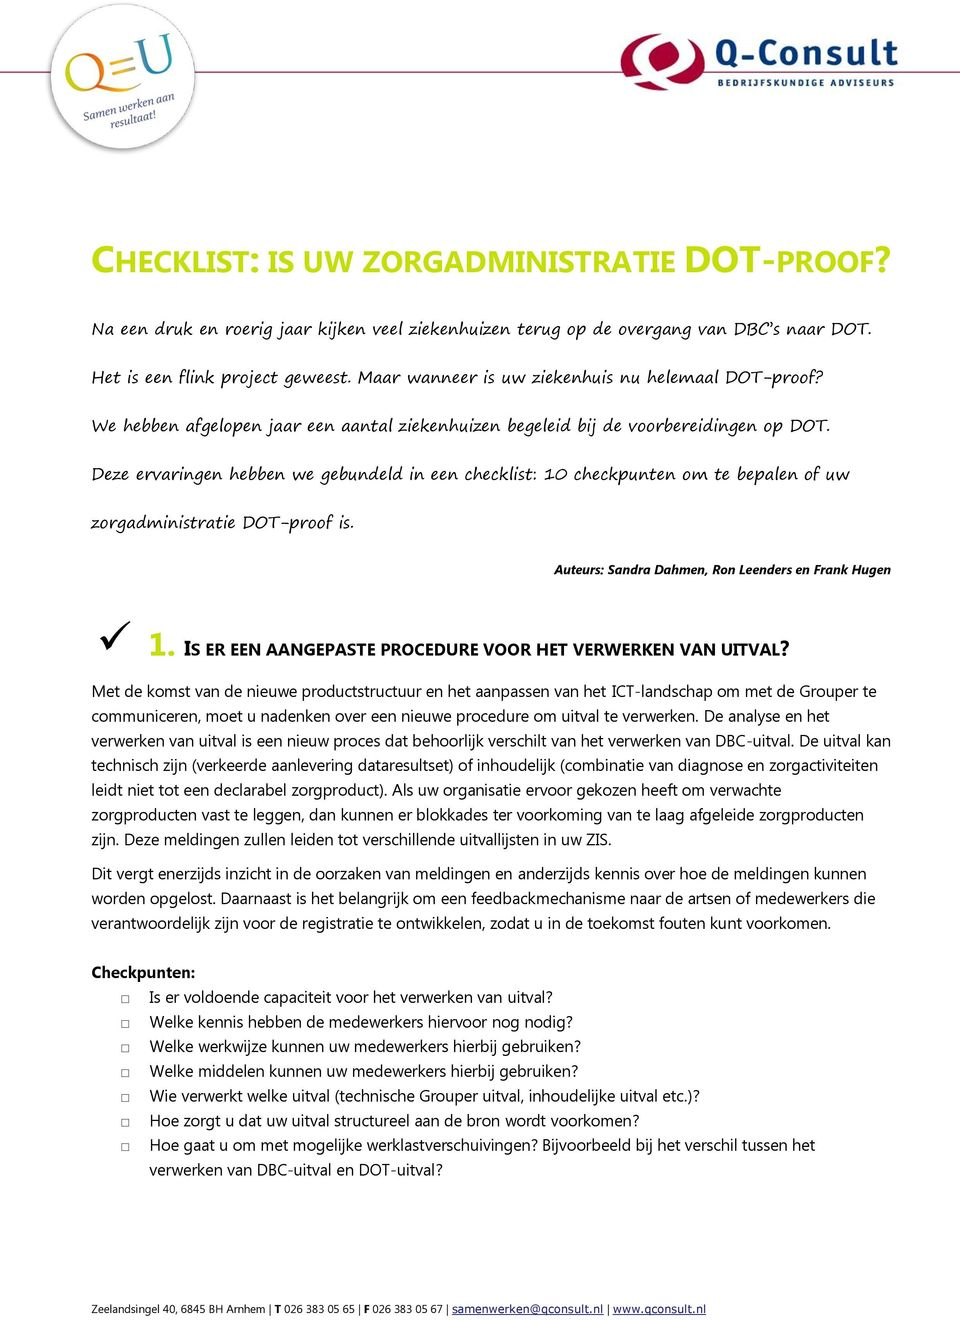 Deze ervaringen hebben we gebundeld in een checklist: 10 checkpunten om te bepalen of uw zorgadministratie DOT-proof is. Auteurs: Sandra Dahmen, Ron Leenders en Frank Hugen 1.